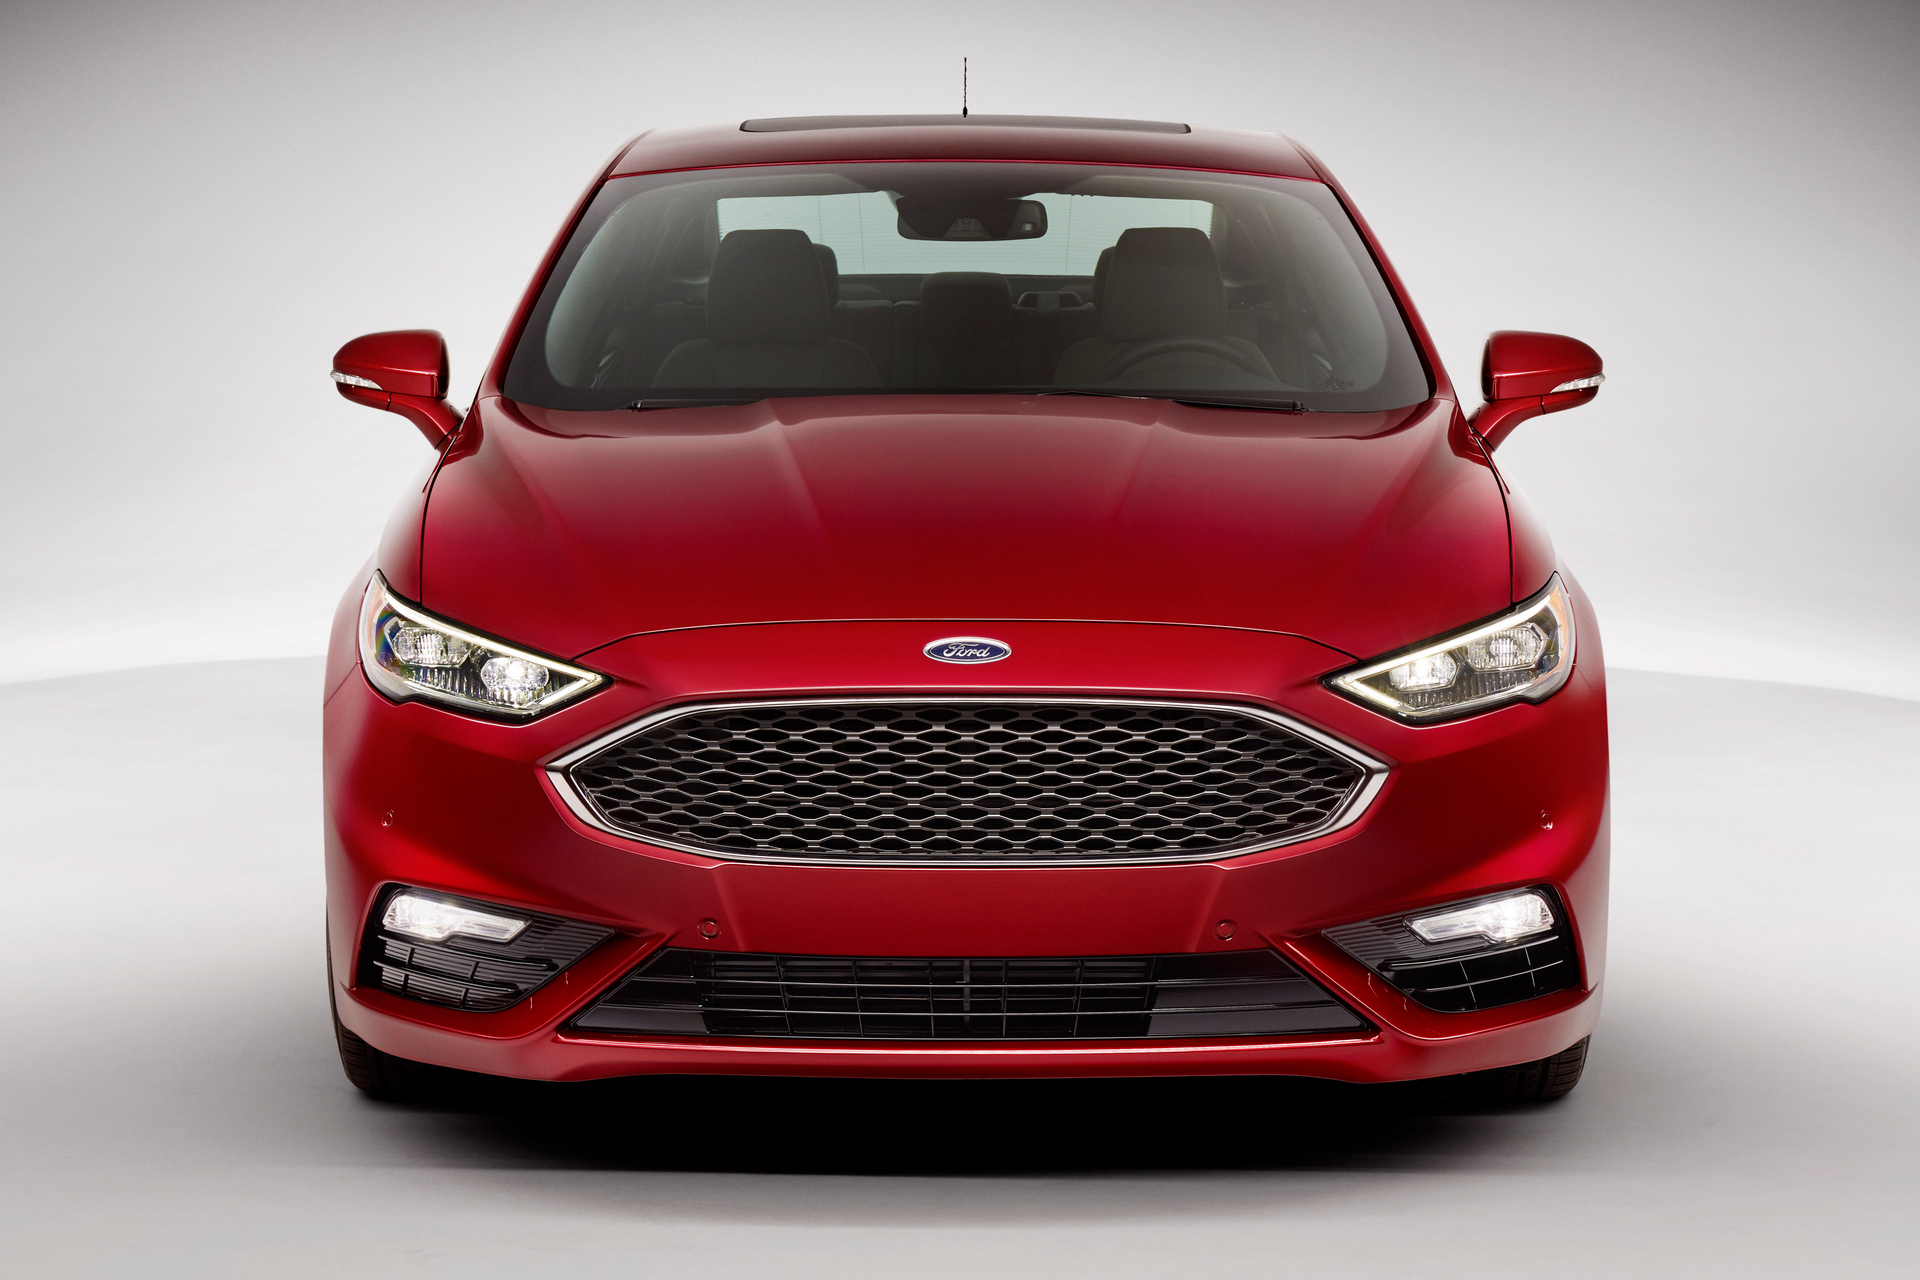 How Much Does A Top Of The Line Ford Fusion Cost